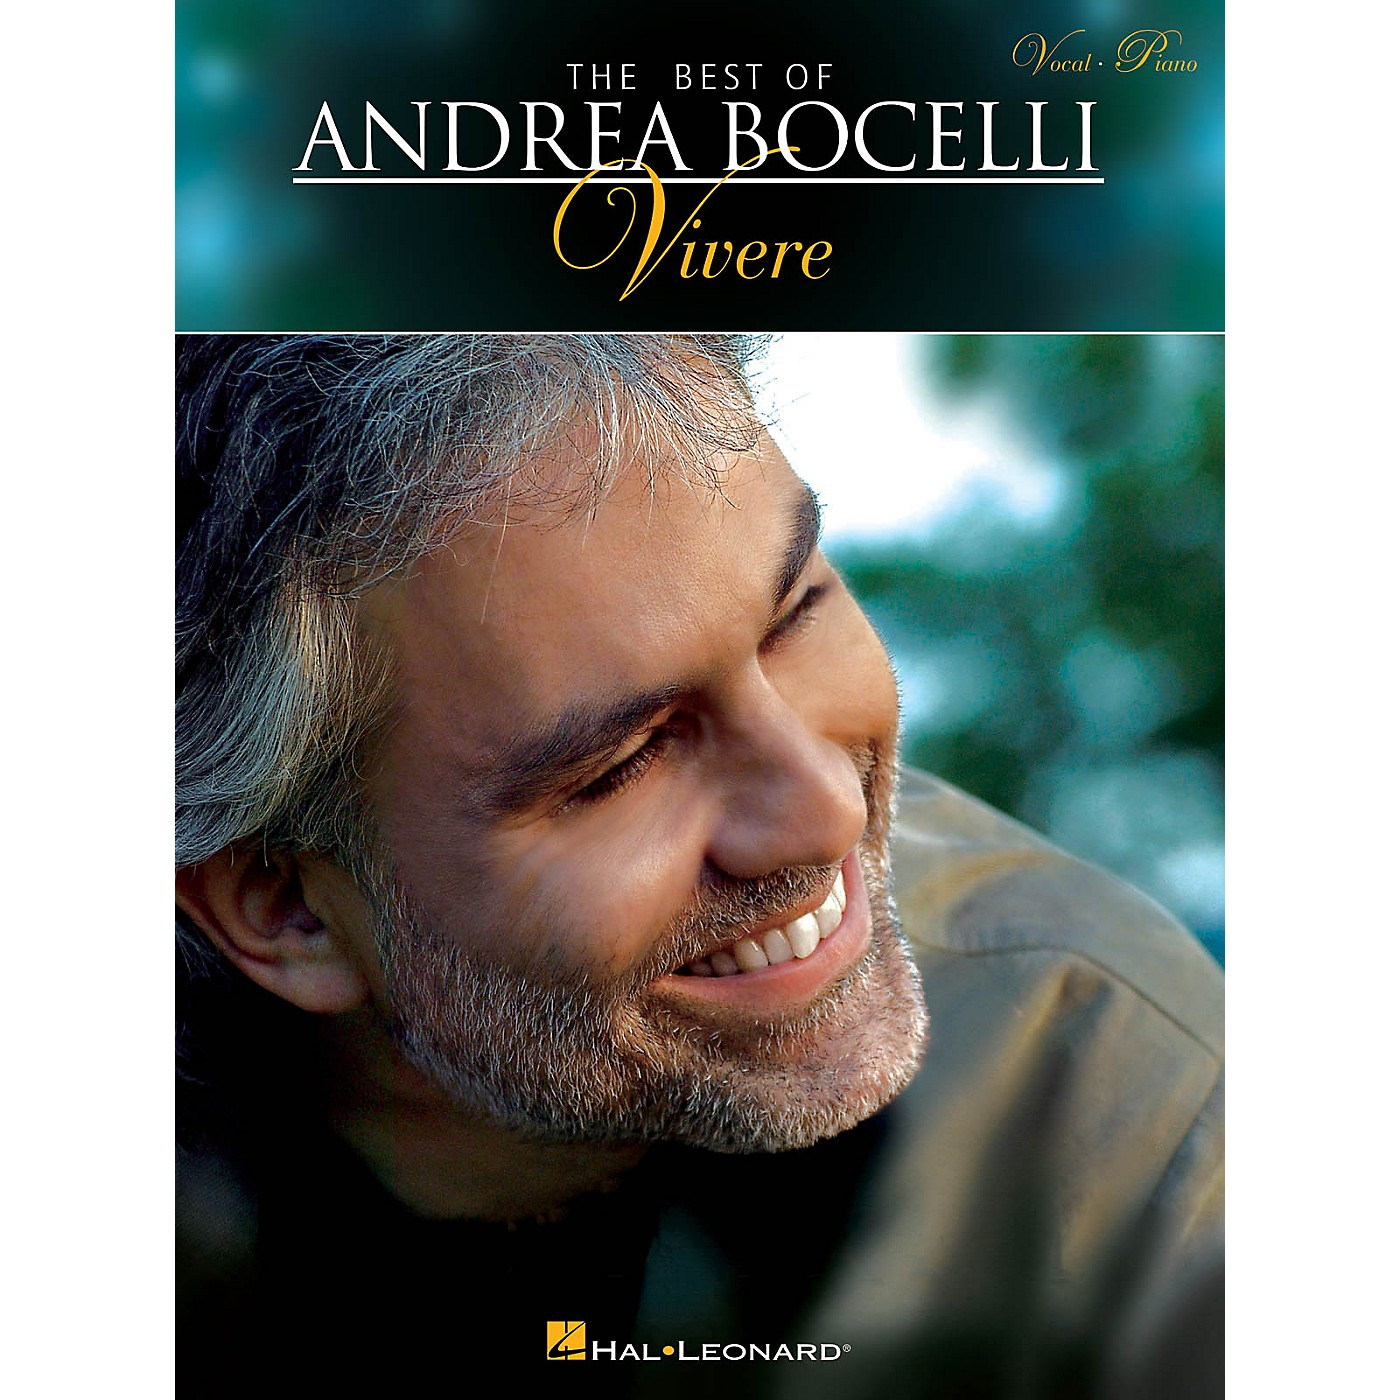 Hal Leonard The Best of Andrea Bocelli: Vivere Vocal/Piano Songbook thumbnail